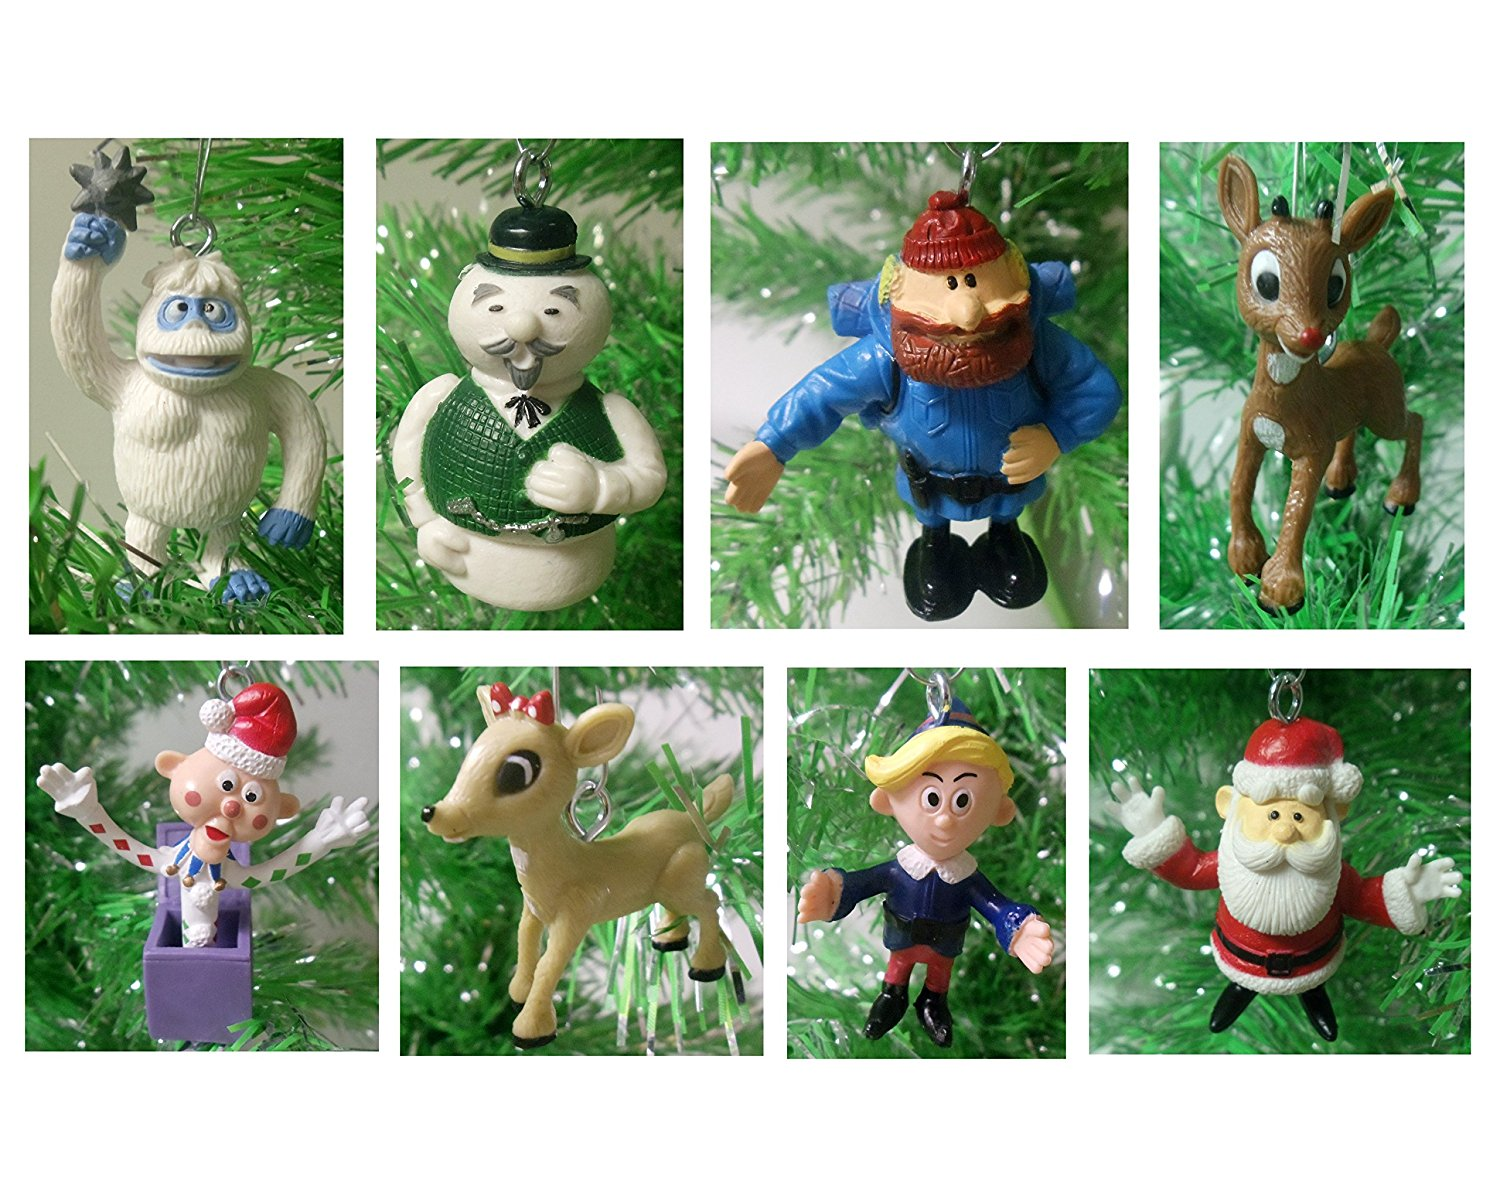 """Rudolph the Red-Nosed Reindeer 8 Piece Holiday Christmas Ornament Set Featuring Yukon Cornelius, Santa, Sam the Snowman, Charlie-In-The-Box, Clarice, Hermey, Bumble, and Rudolph - Shatterproof Ornaments Range from 2"""" to 3"""" Tall - Perfect for Small Kids Tree or Desk Office Tree"""